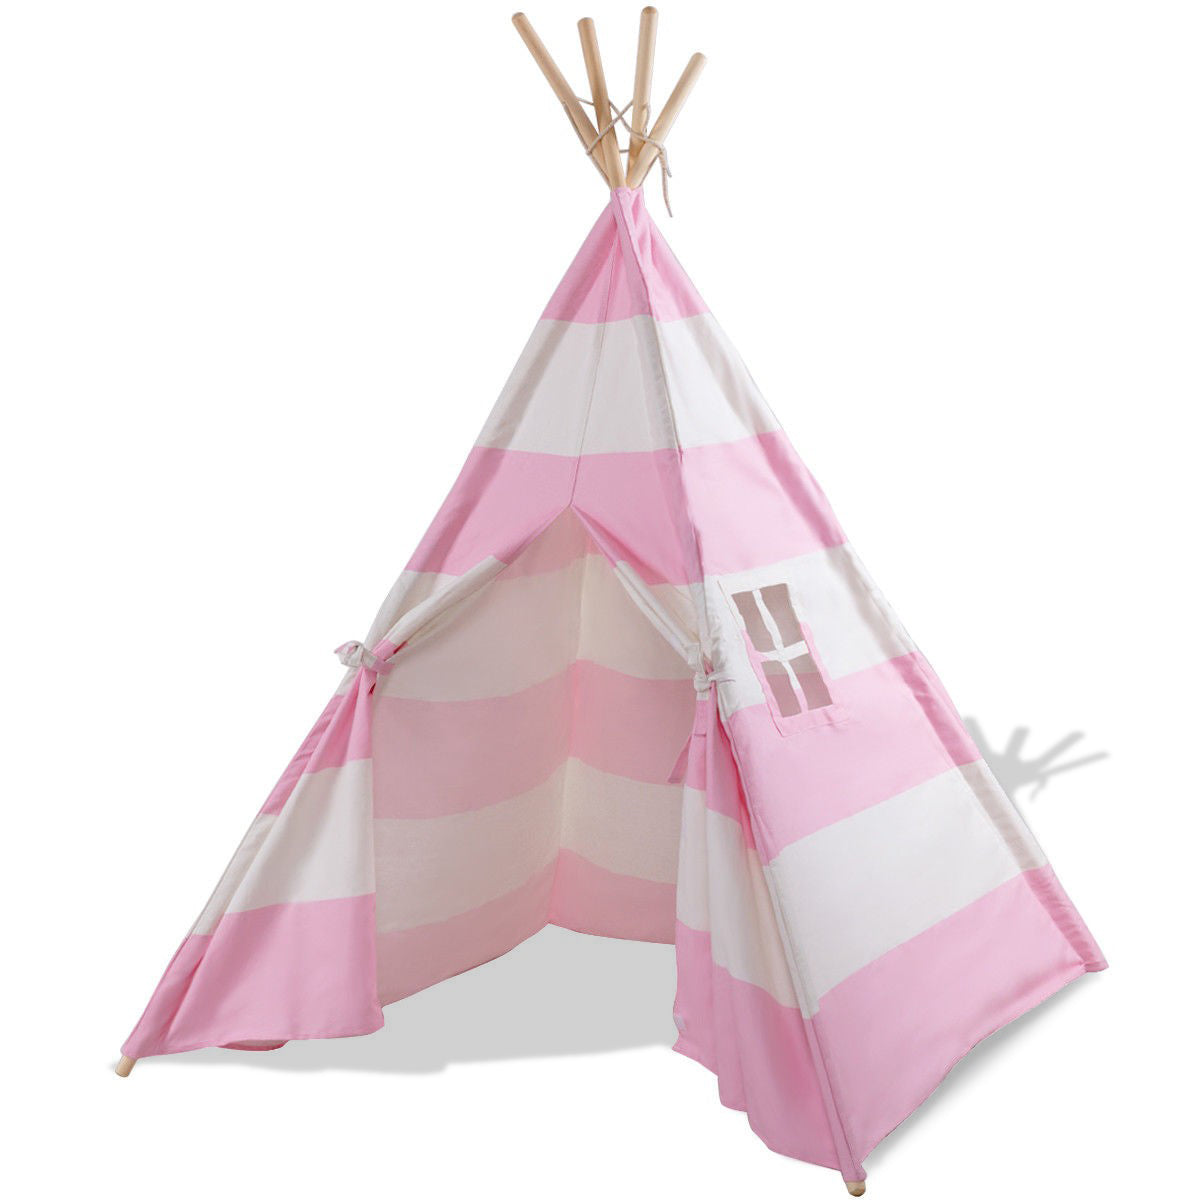 5' White & Pink Portable Indian Sleeping Dome Tent C61 - Baby World Inc